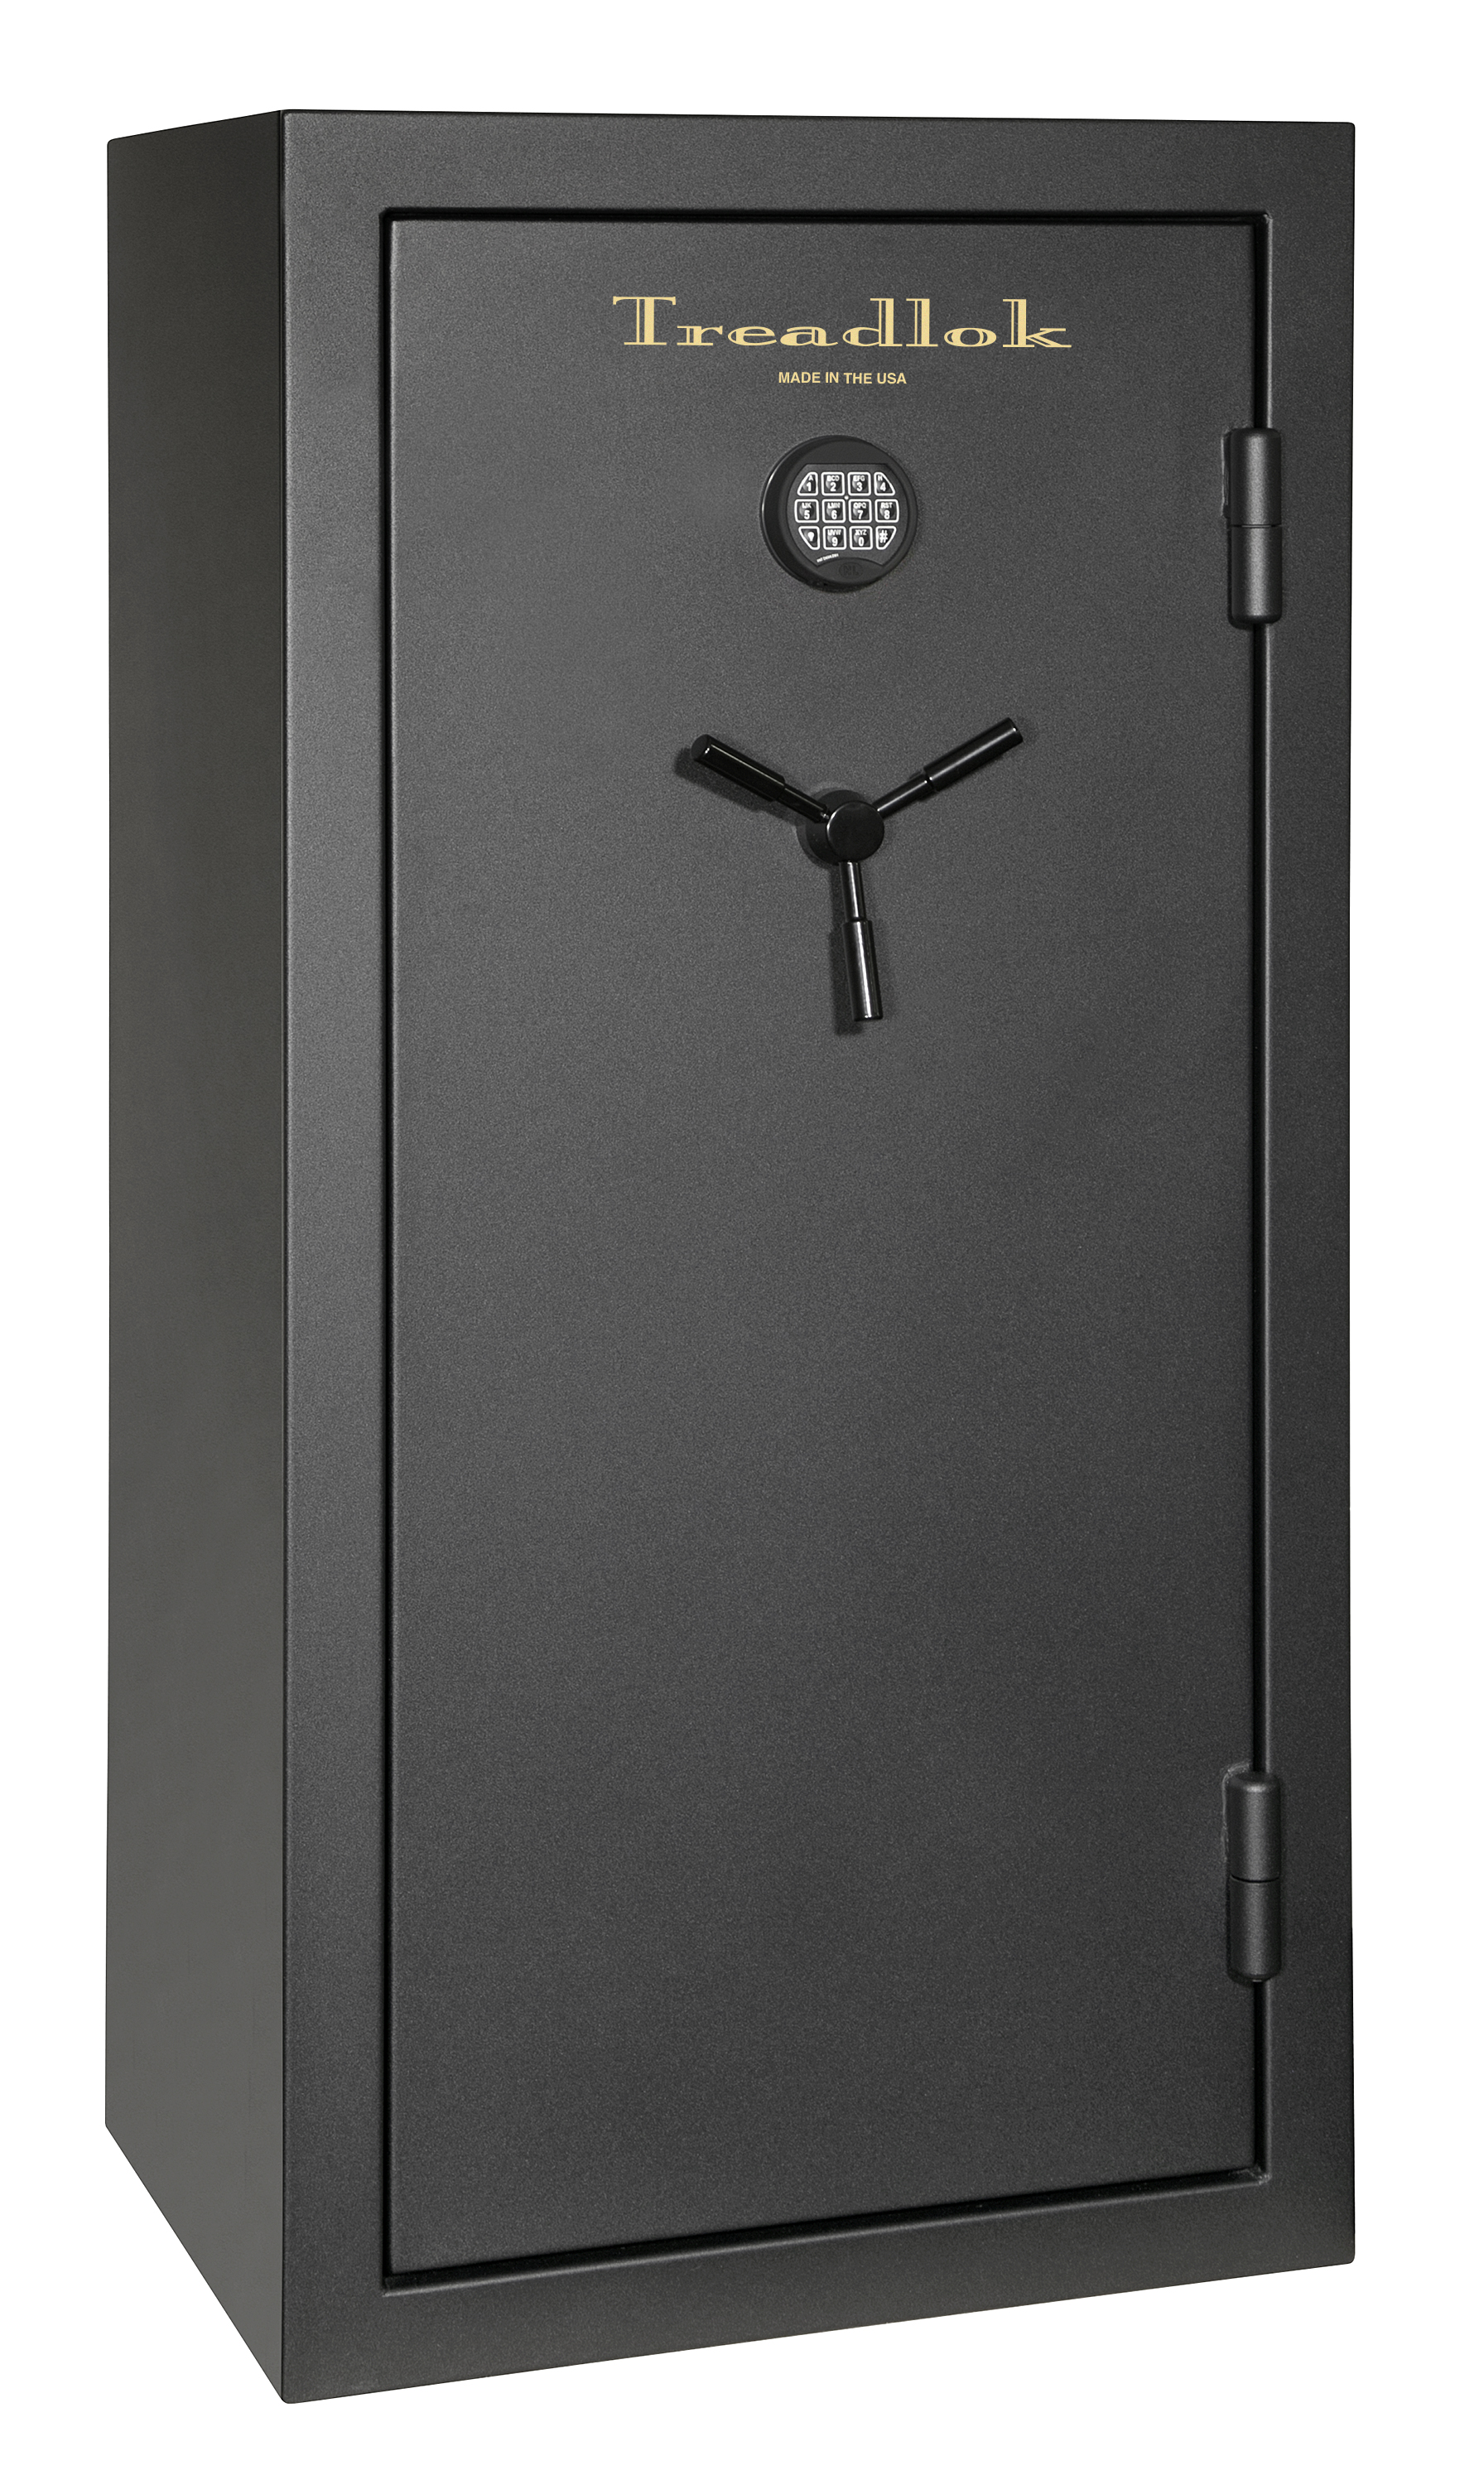 Treadlok 18 28 Gun Capacity 45 Minute Fire Safe Tl 18 9 E